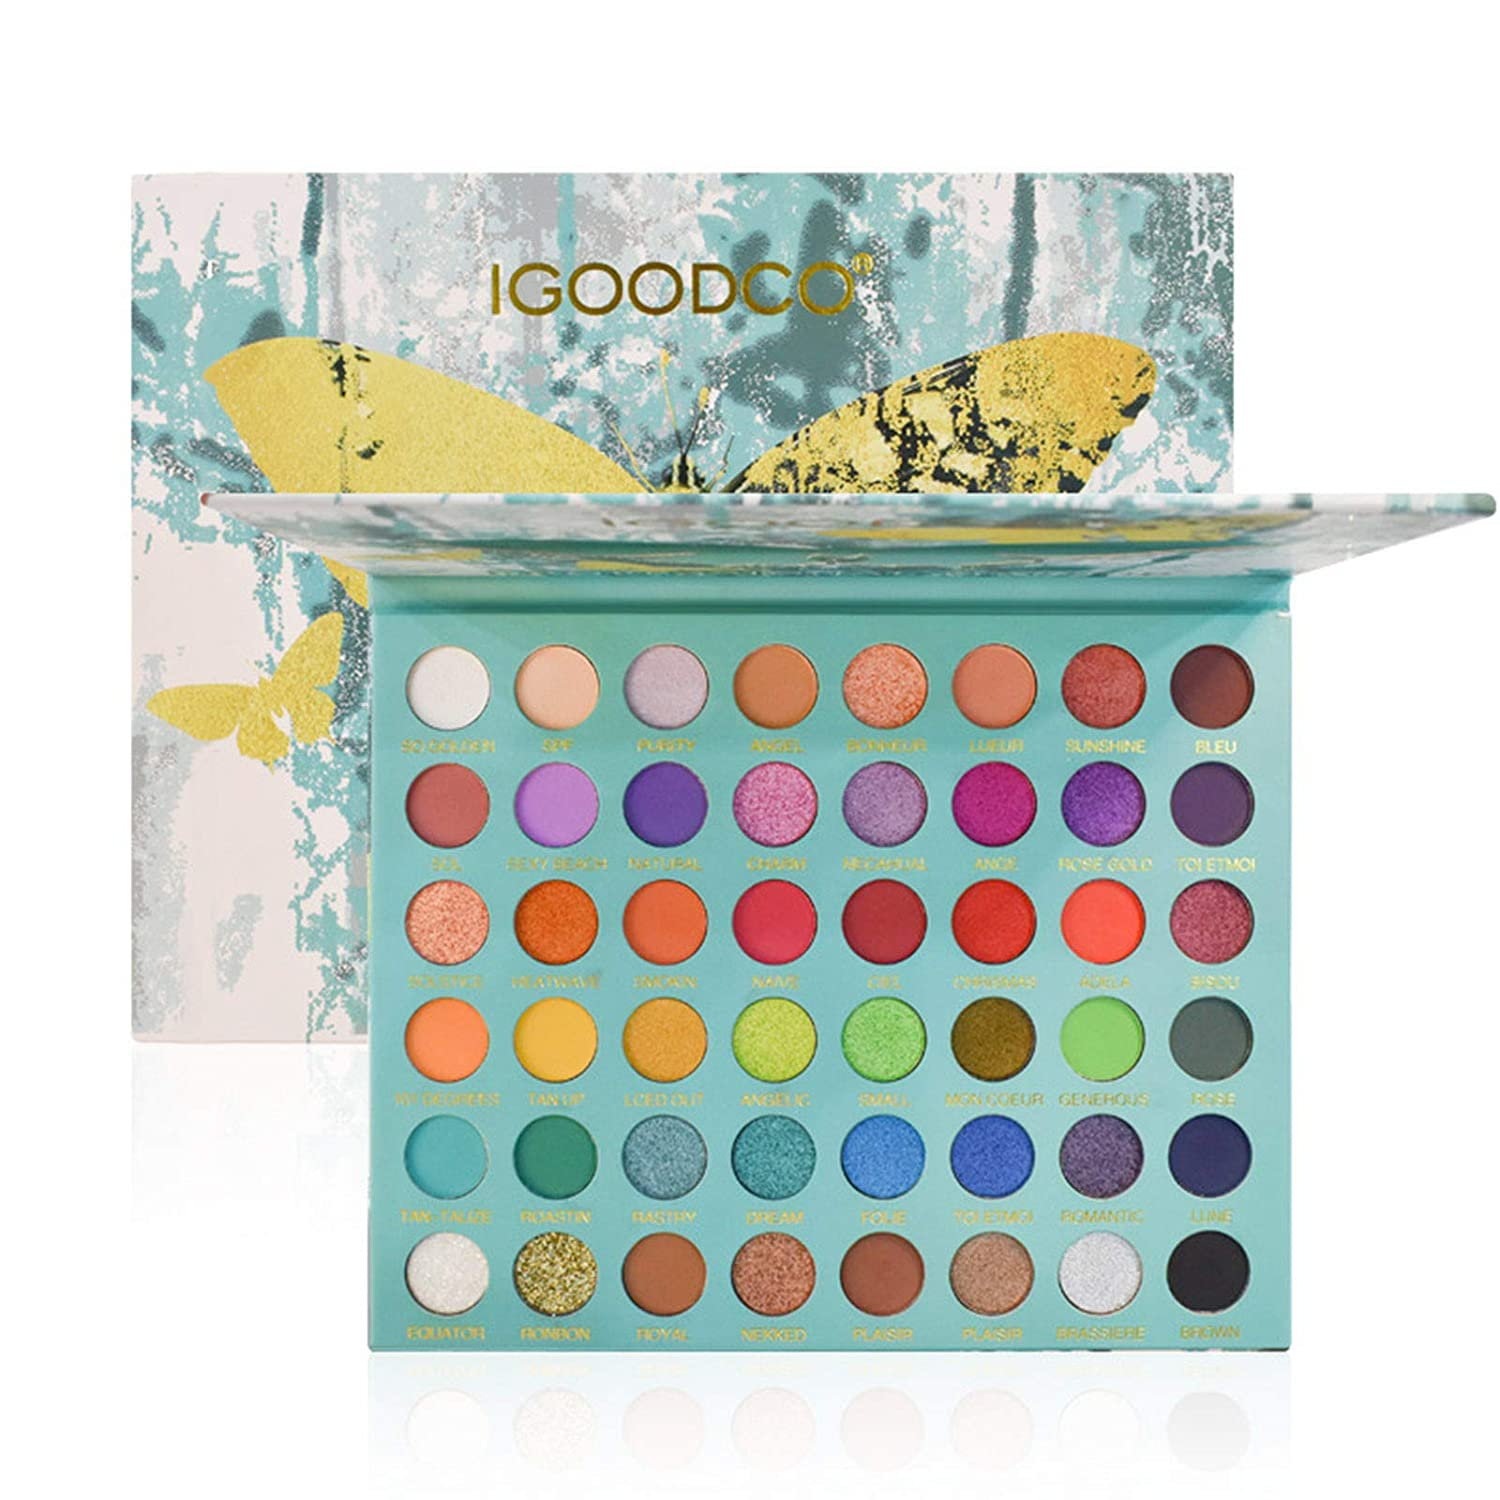 48 Colors Pro Makeup Eyeshadow Palette Anself High Pigmented Shimmer Matte Eyeshadow Makeup Palette Neutral Colorful Eye Cosmetic Sweatproof and Waterproof With Mirror